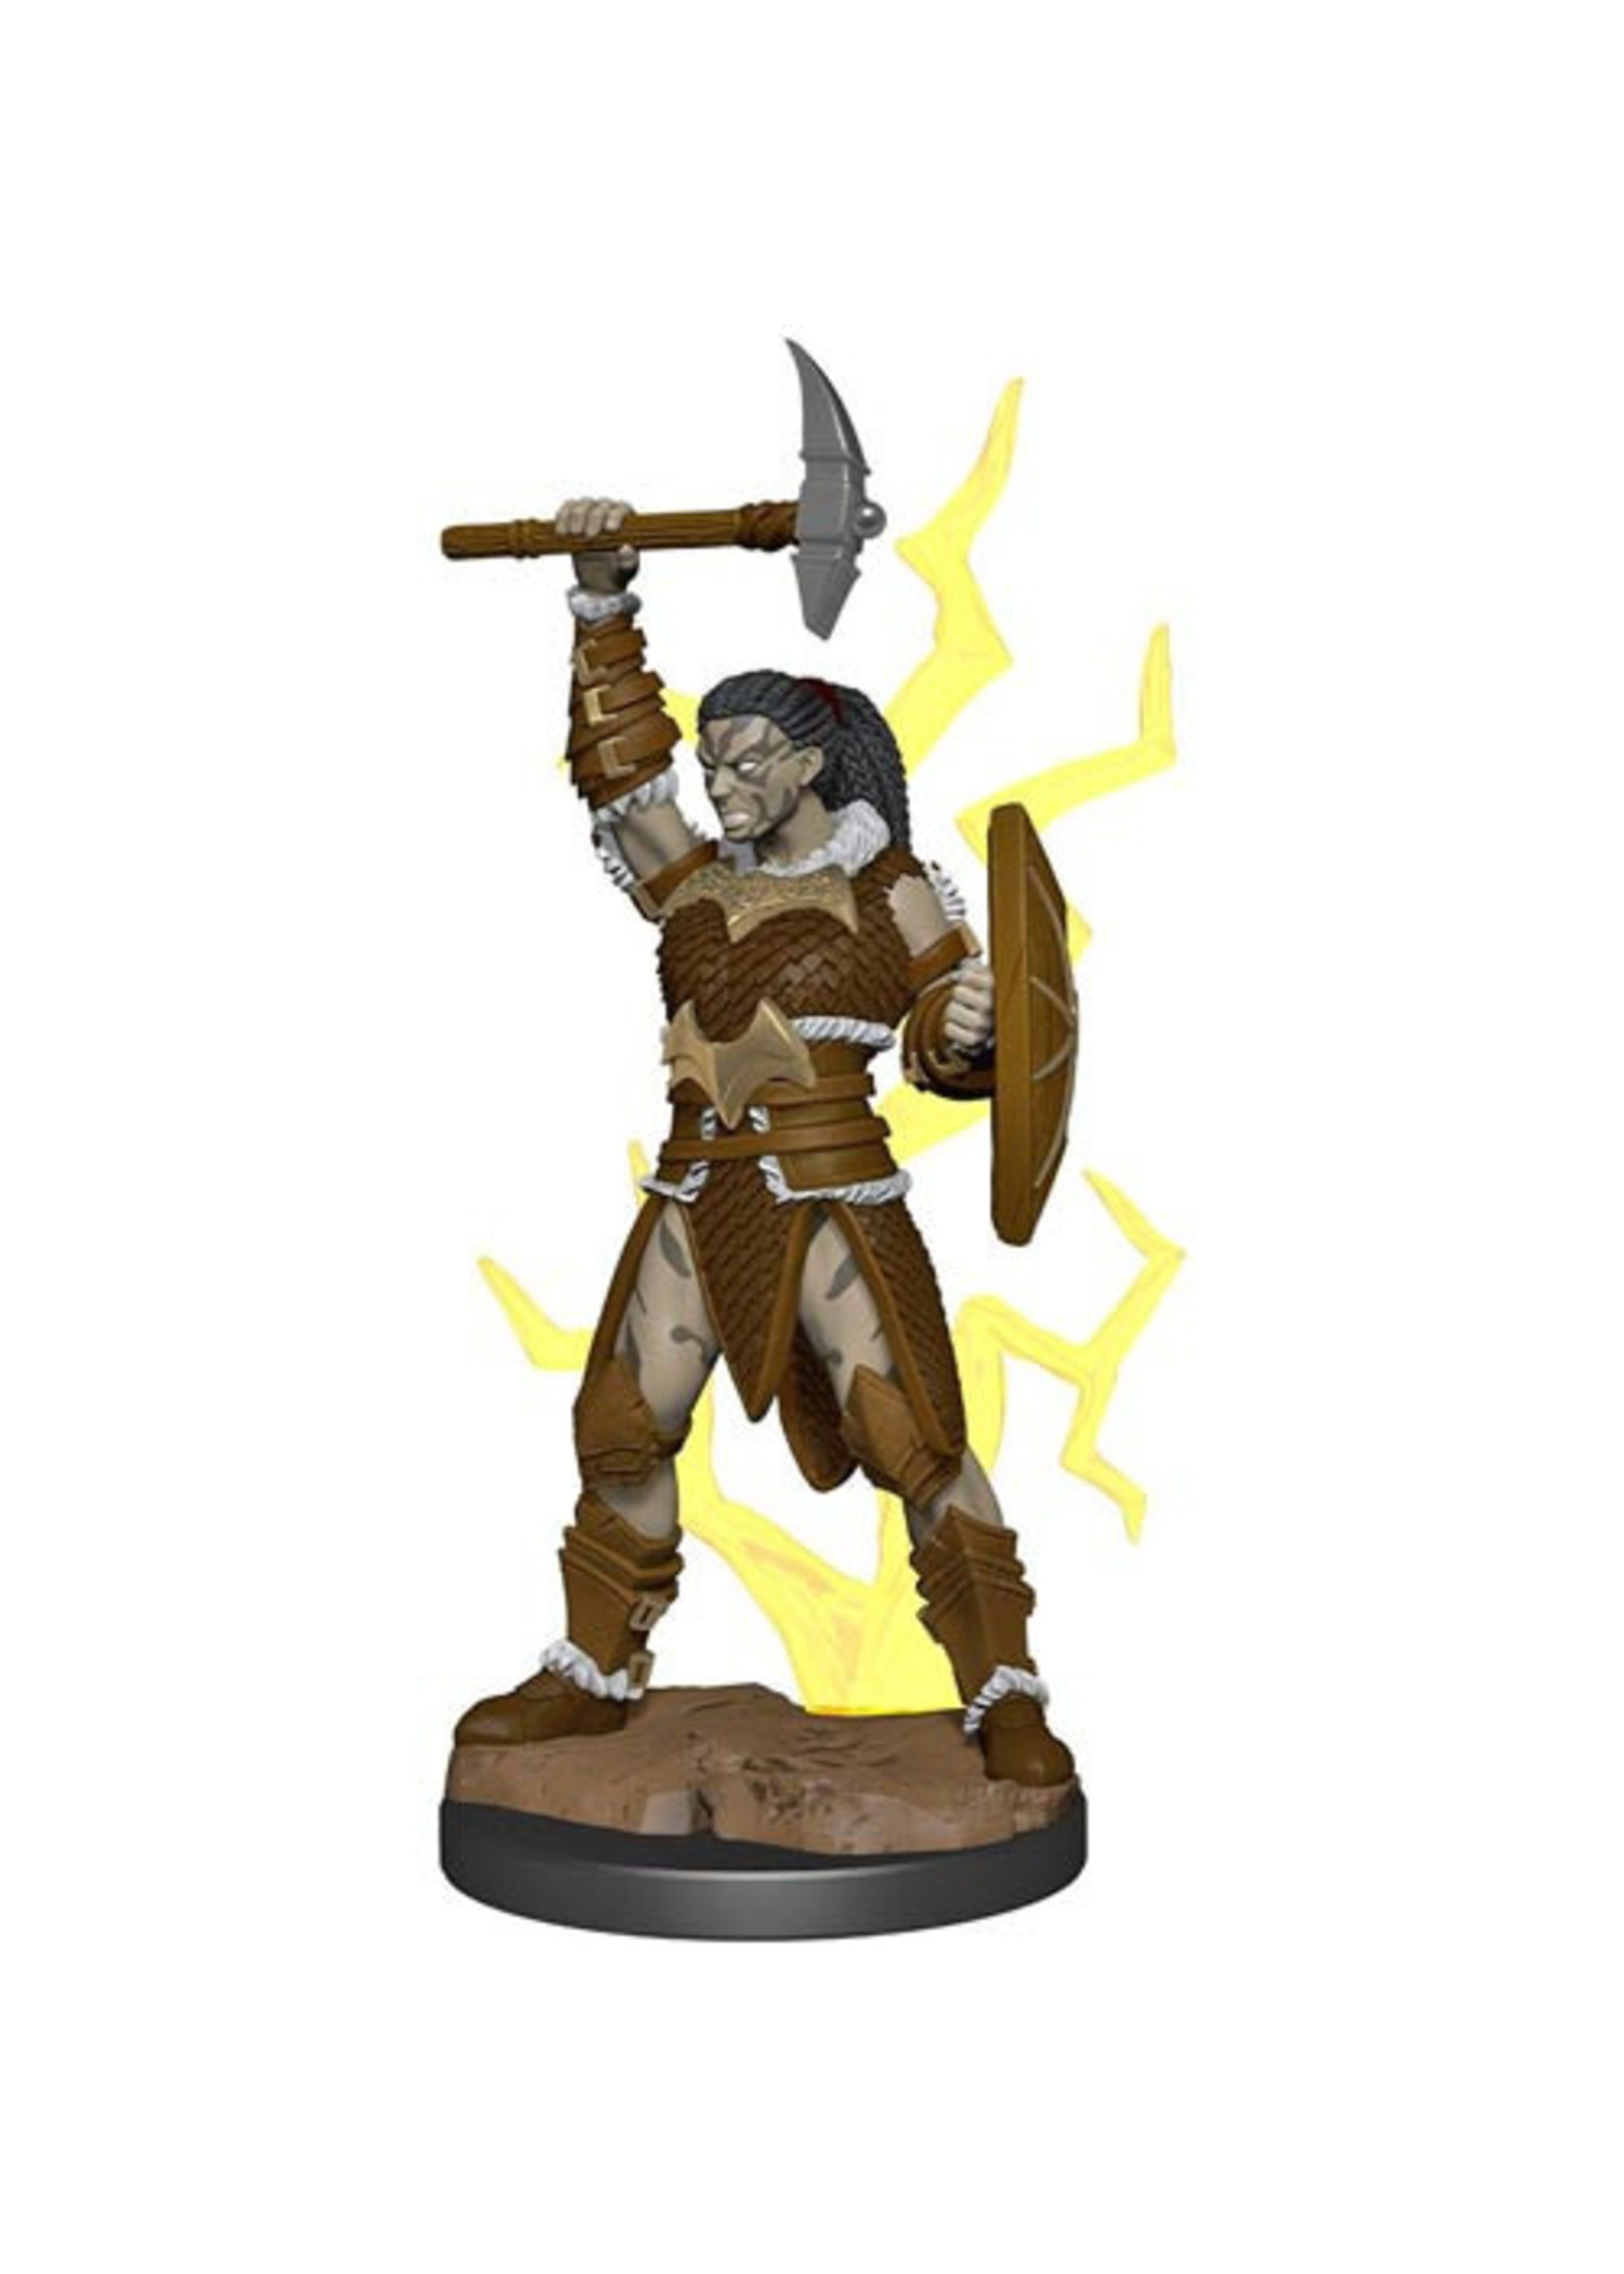 Dungeons & Dragons Fantasy Miniatures: Icons of the Realms Premium Figures W5 Goliath Barbarian Female